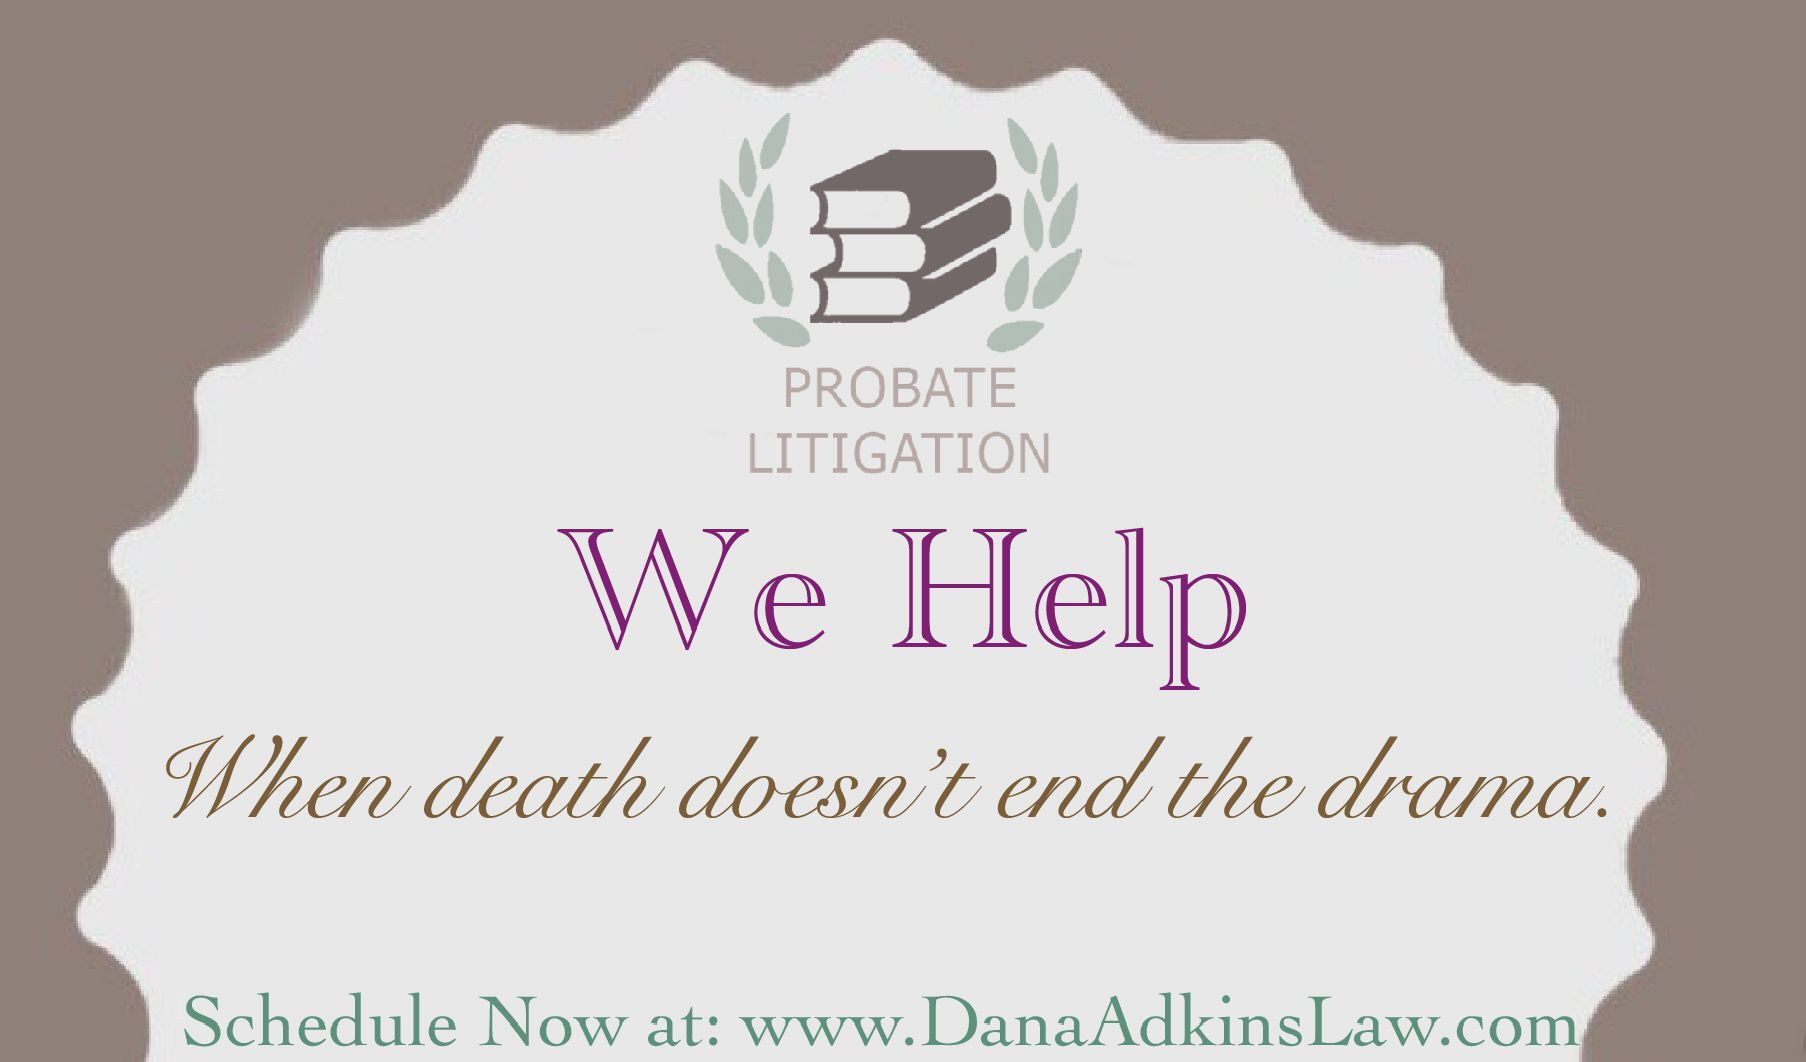 Pin By Dana Adkins On Dana Adkins Law Place Card Holders Place